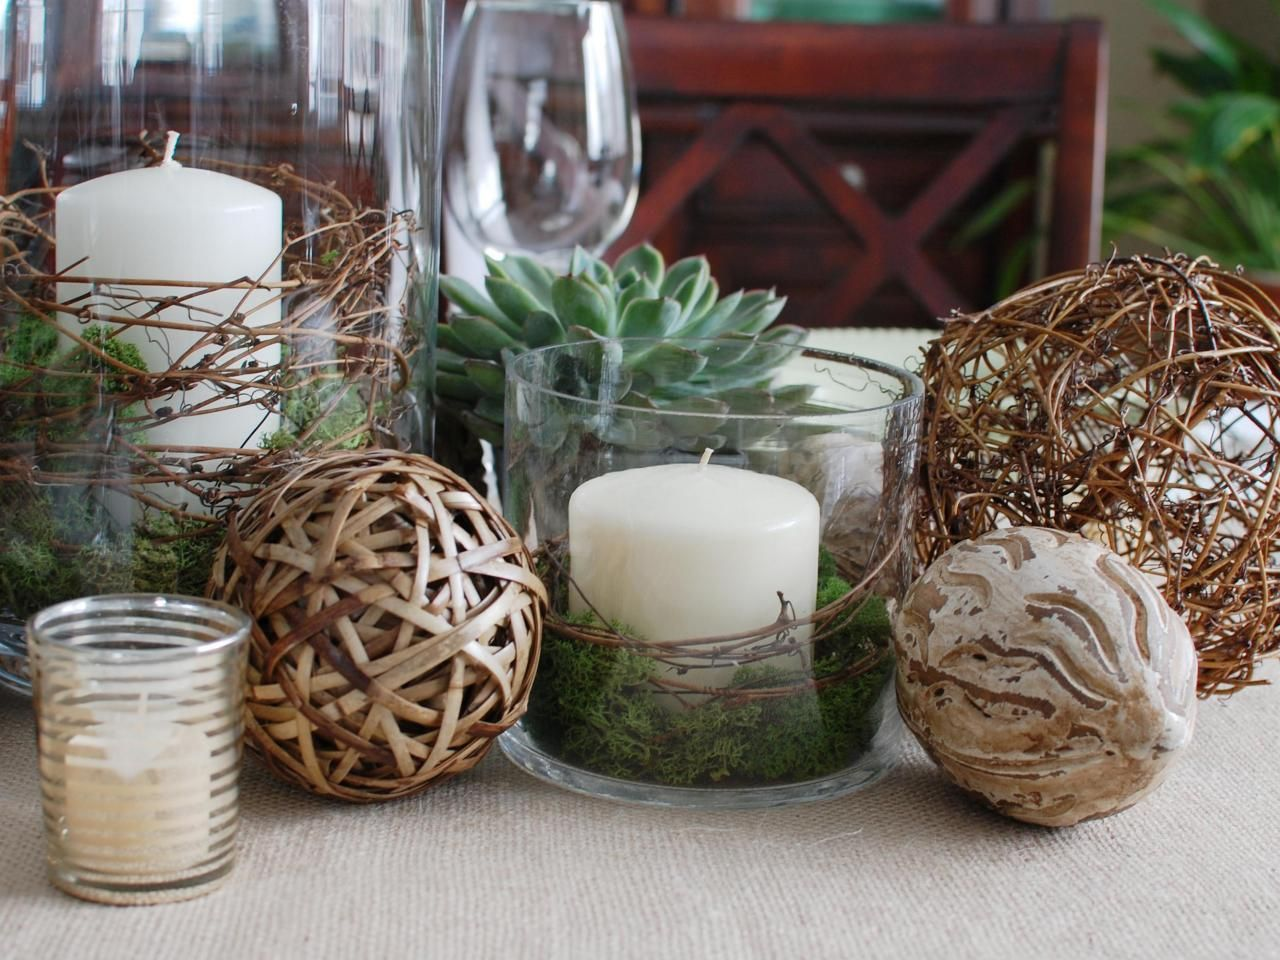 Easy Centerpieces For Thanksgiving Or Fall Parties Moss CenterpiecesDining Room Table CenterpiecesWinter